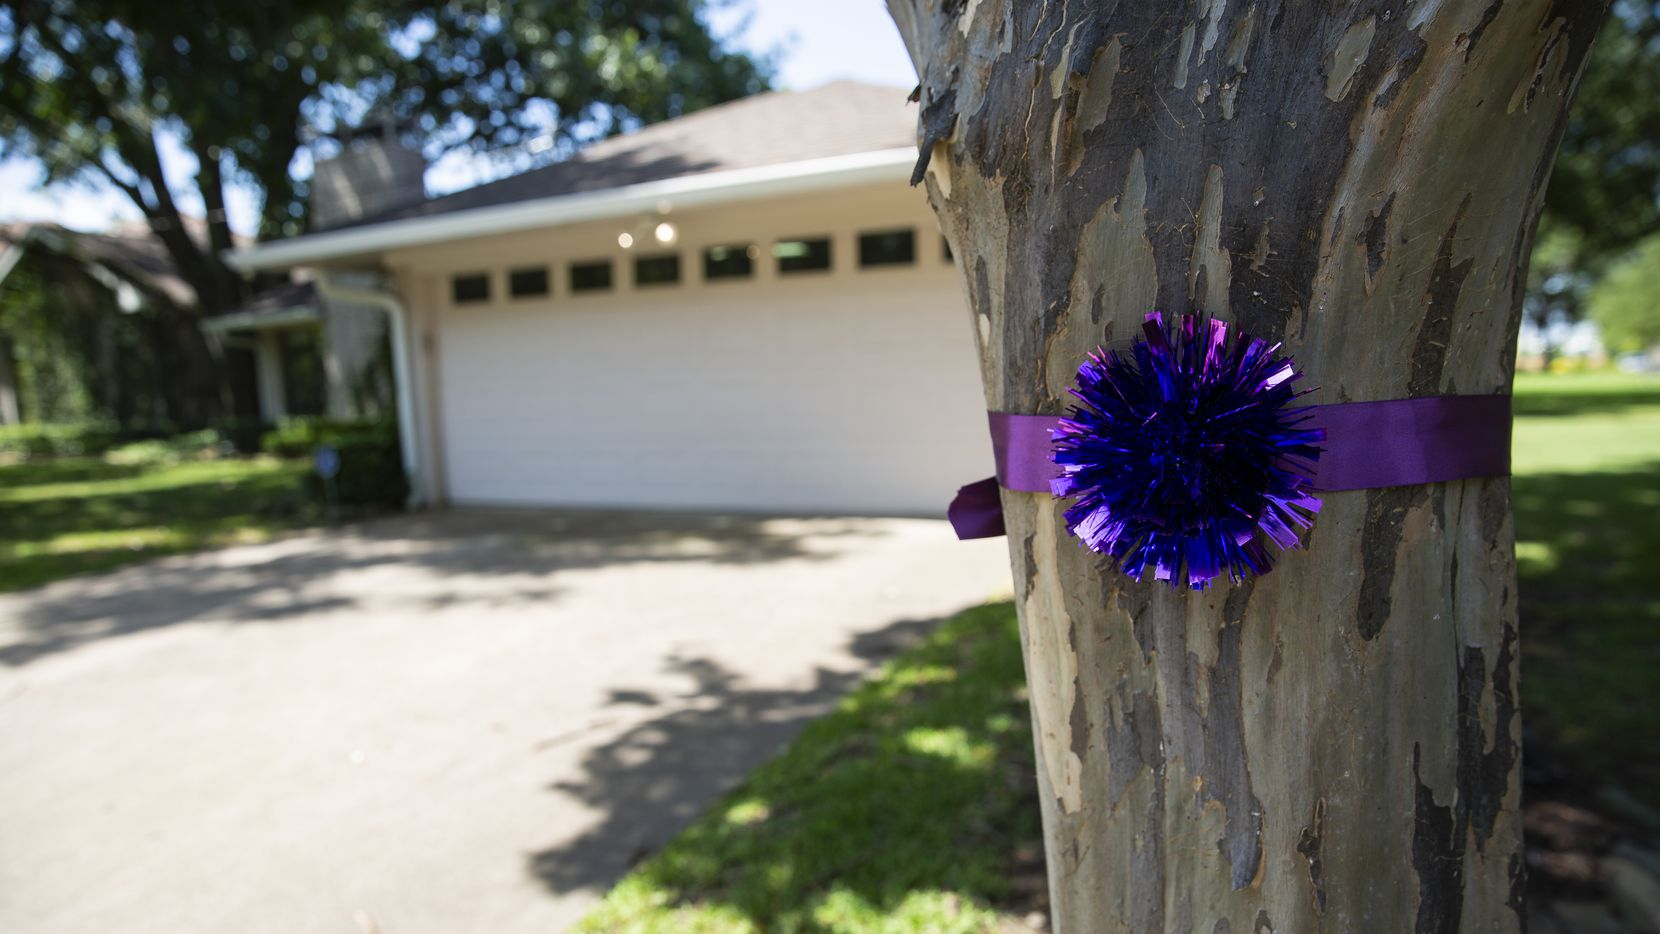 Neighbors dressed the trees lining the Baker home with violet ribbons in honor of Leslie Baker's memory.